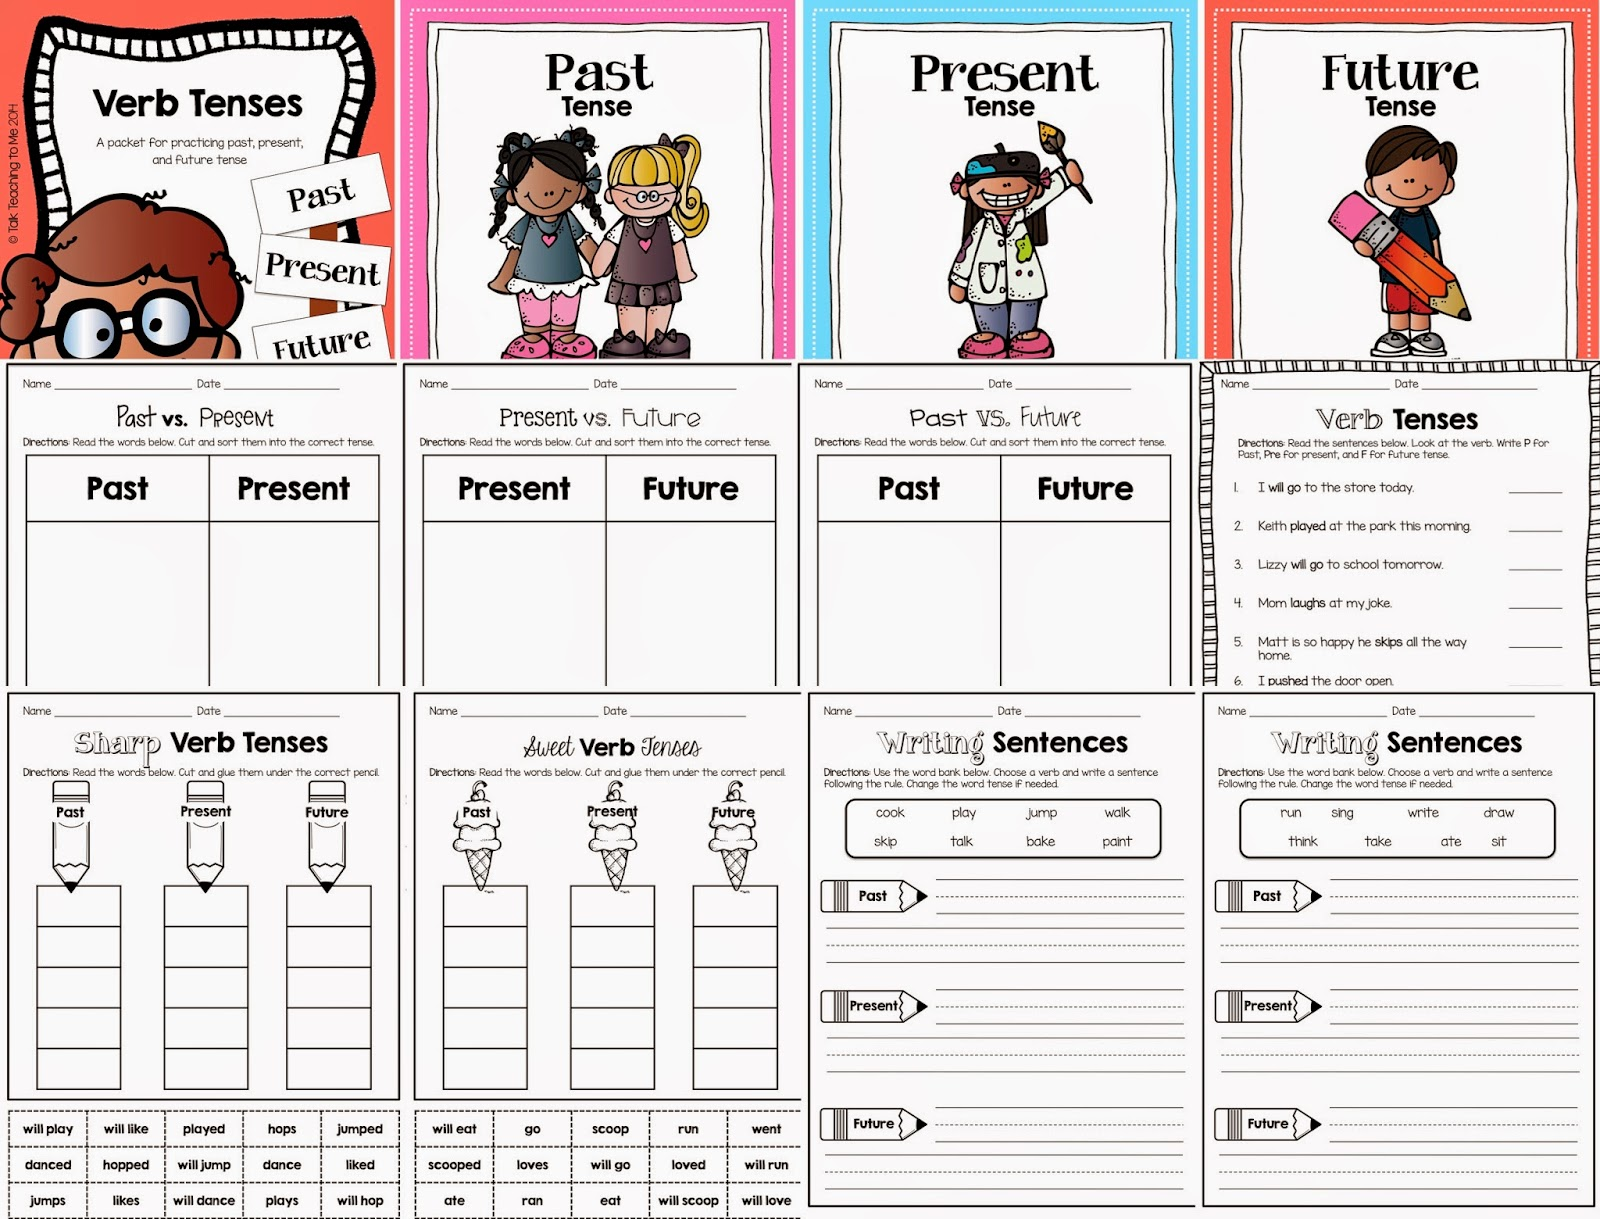 verbs tenses Looking for verb tense worksheets we've got lots of them, all available for free download click here to start now - no registration required.